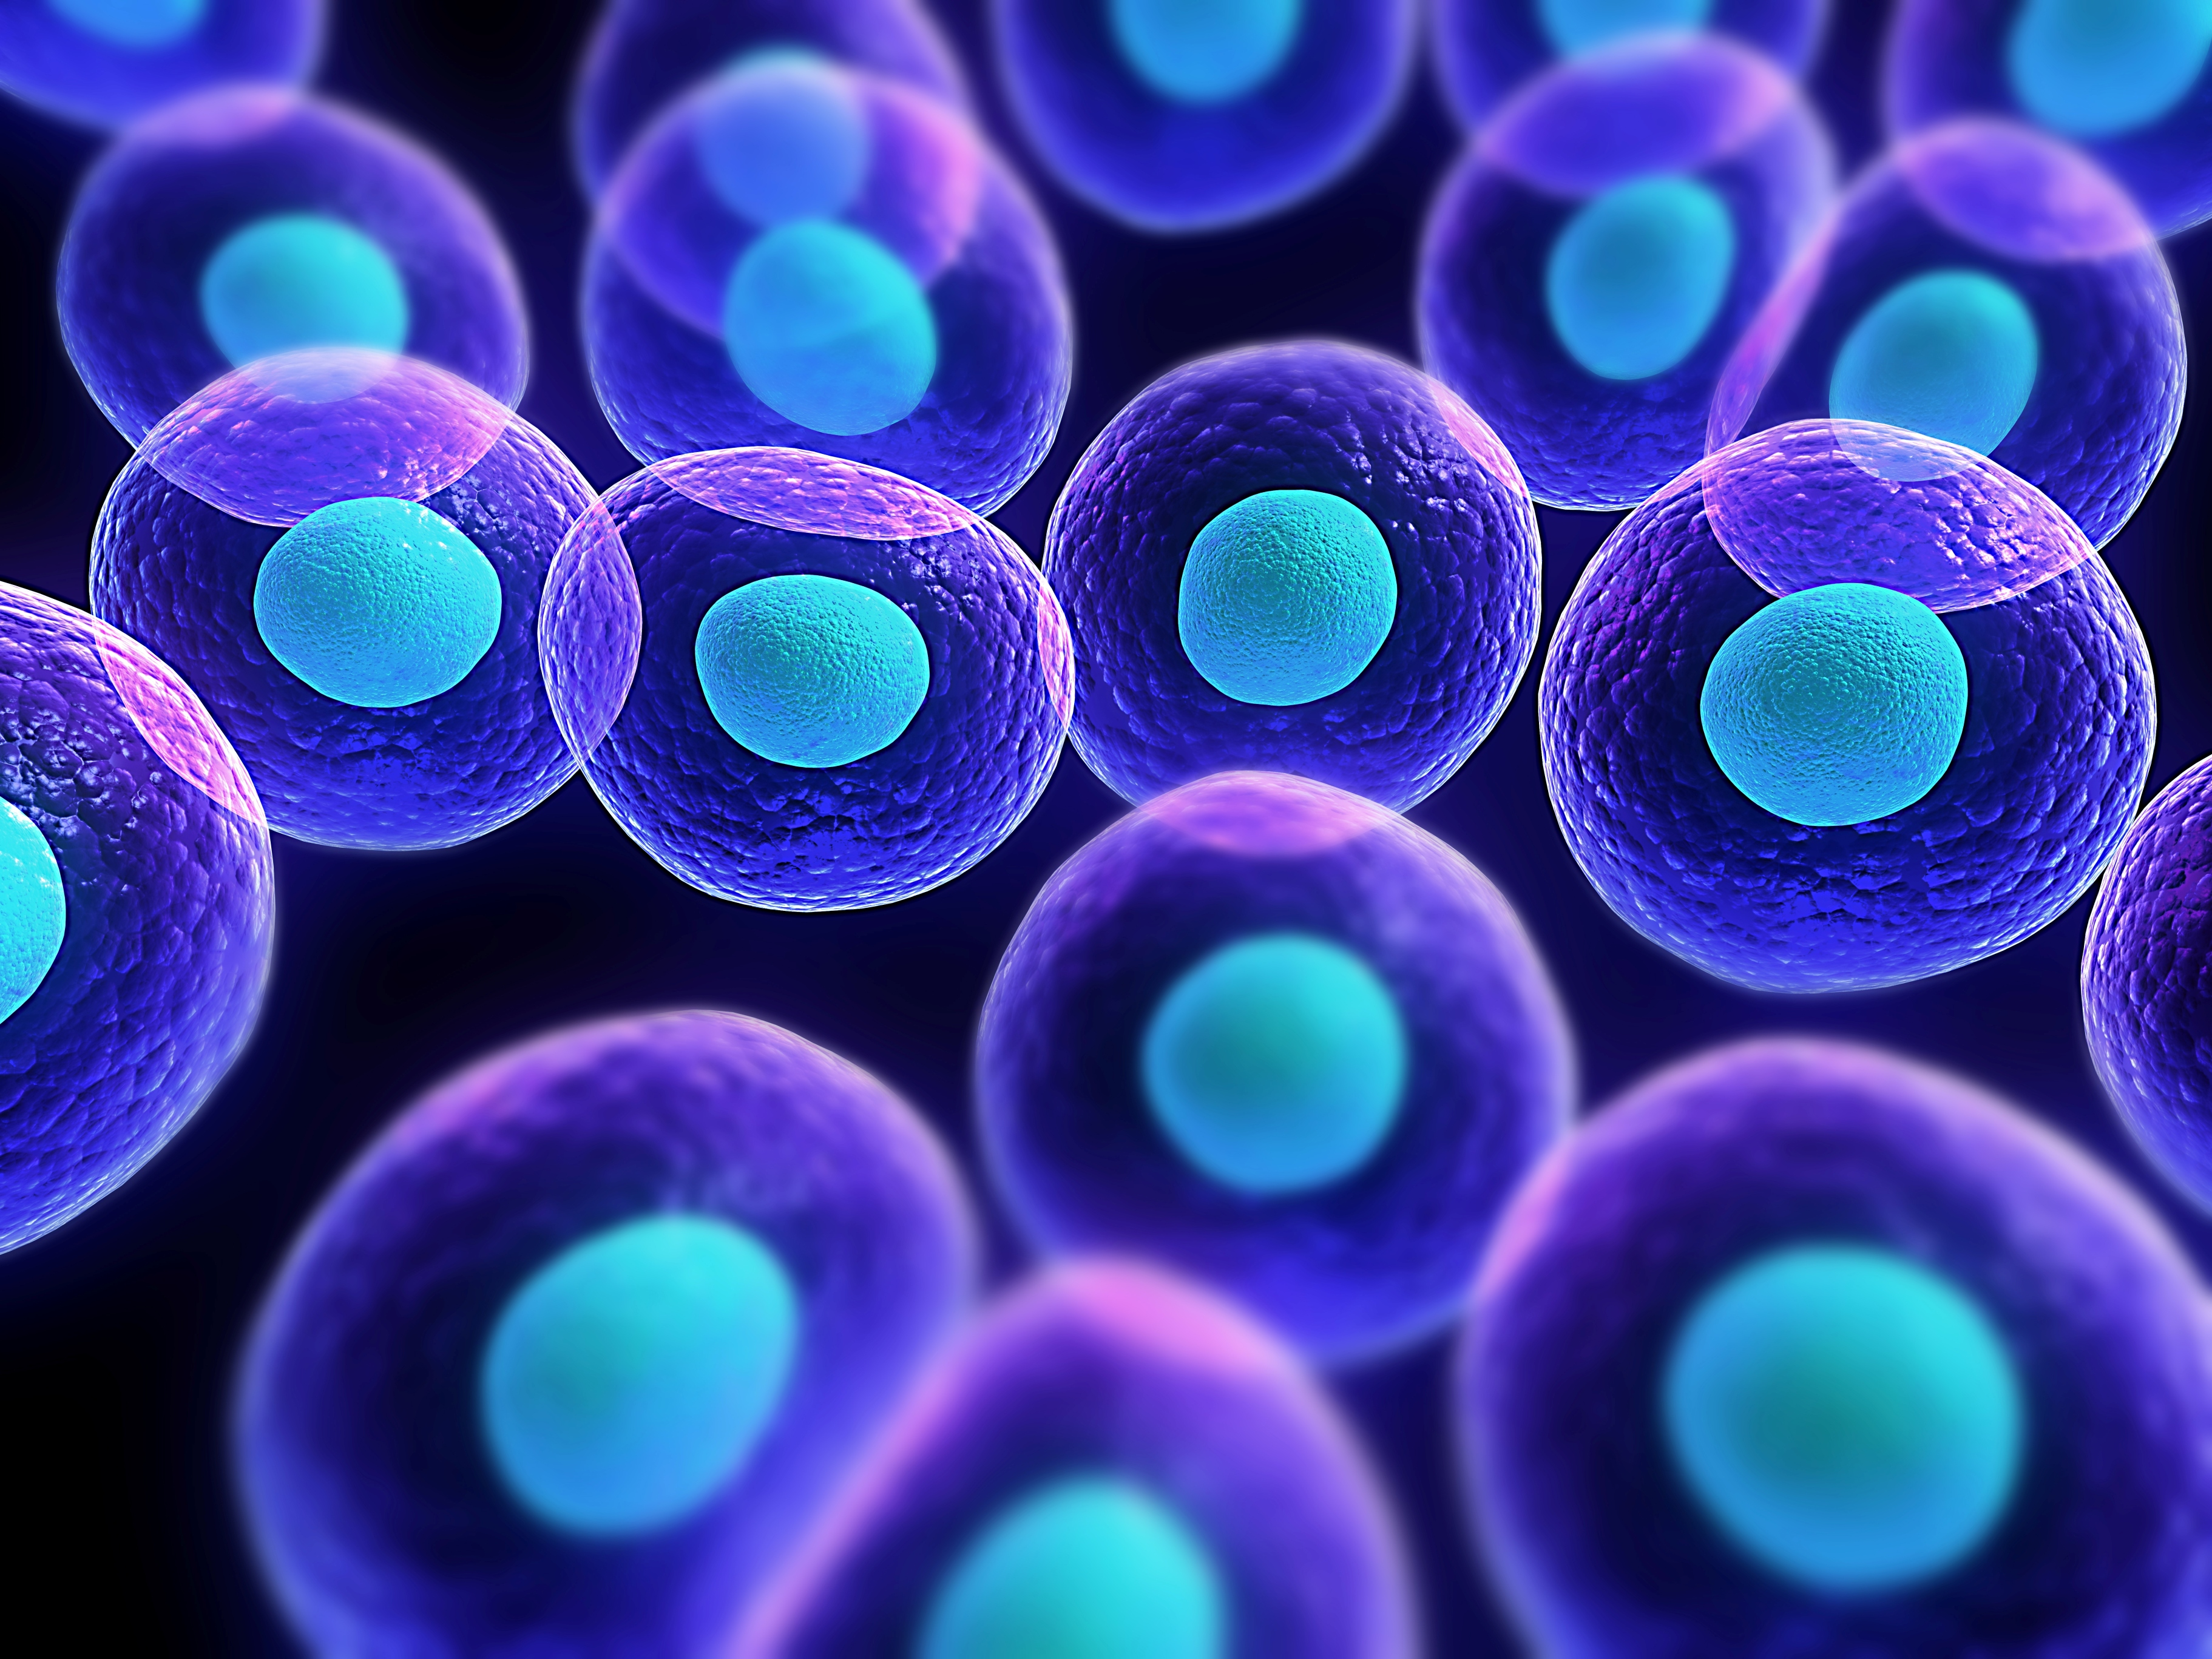 48] Cell Biology Wallpaper on WallpaperSafari 3645x2734